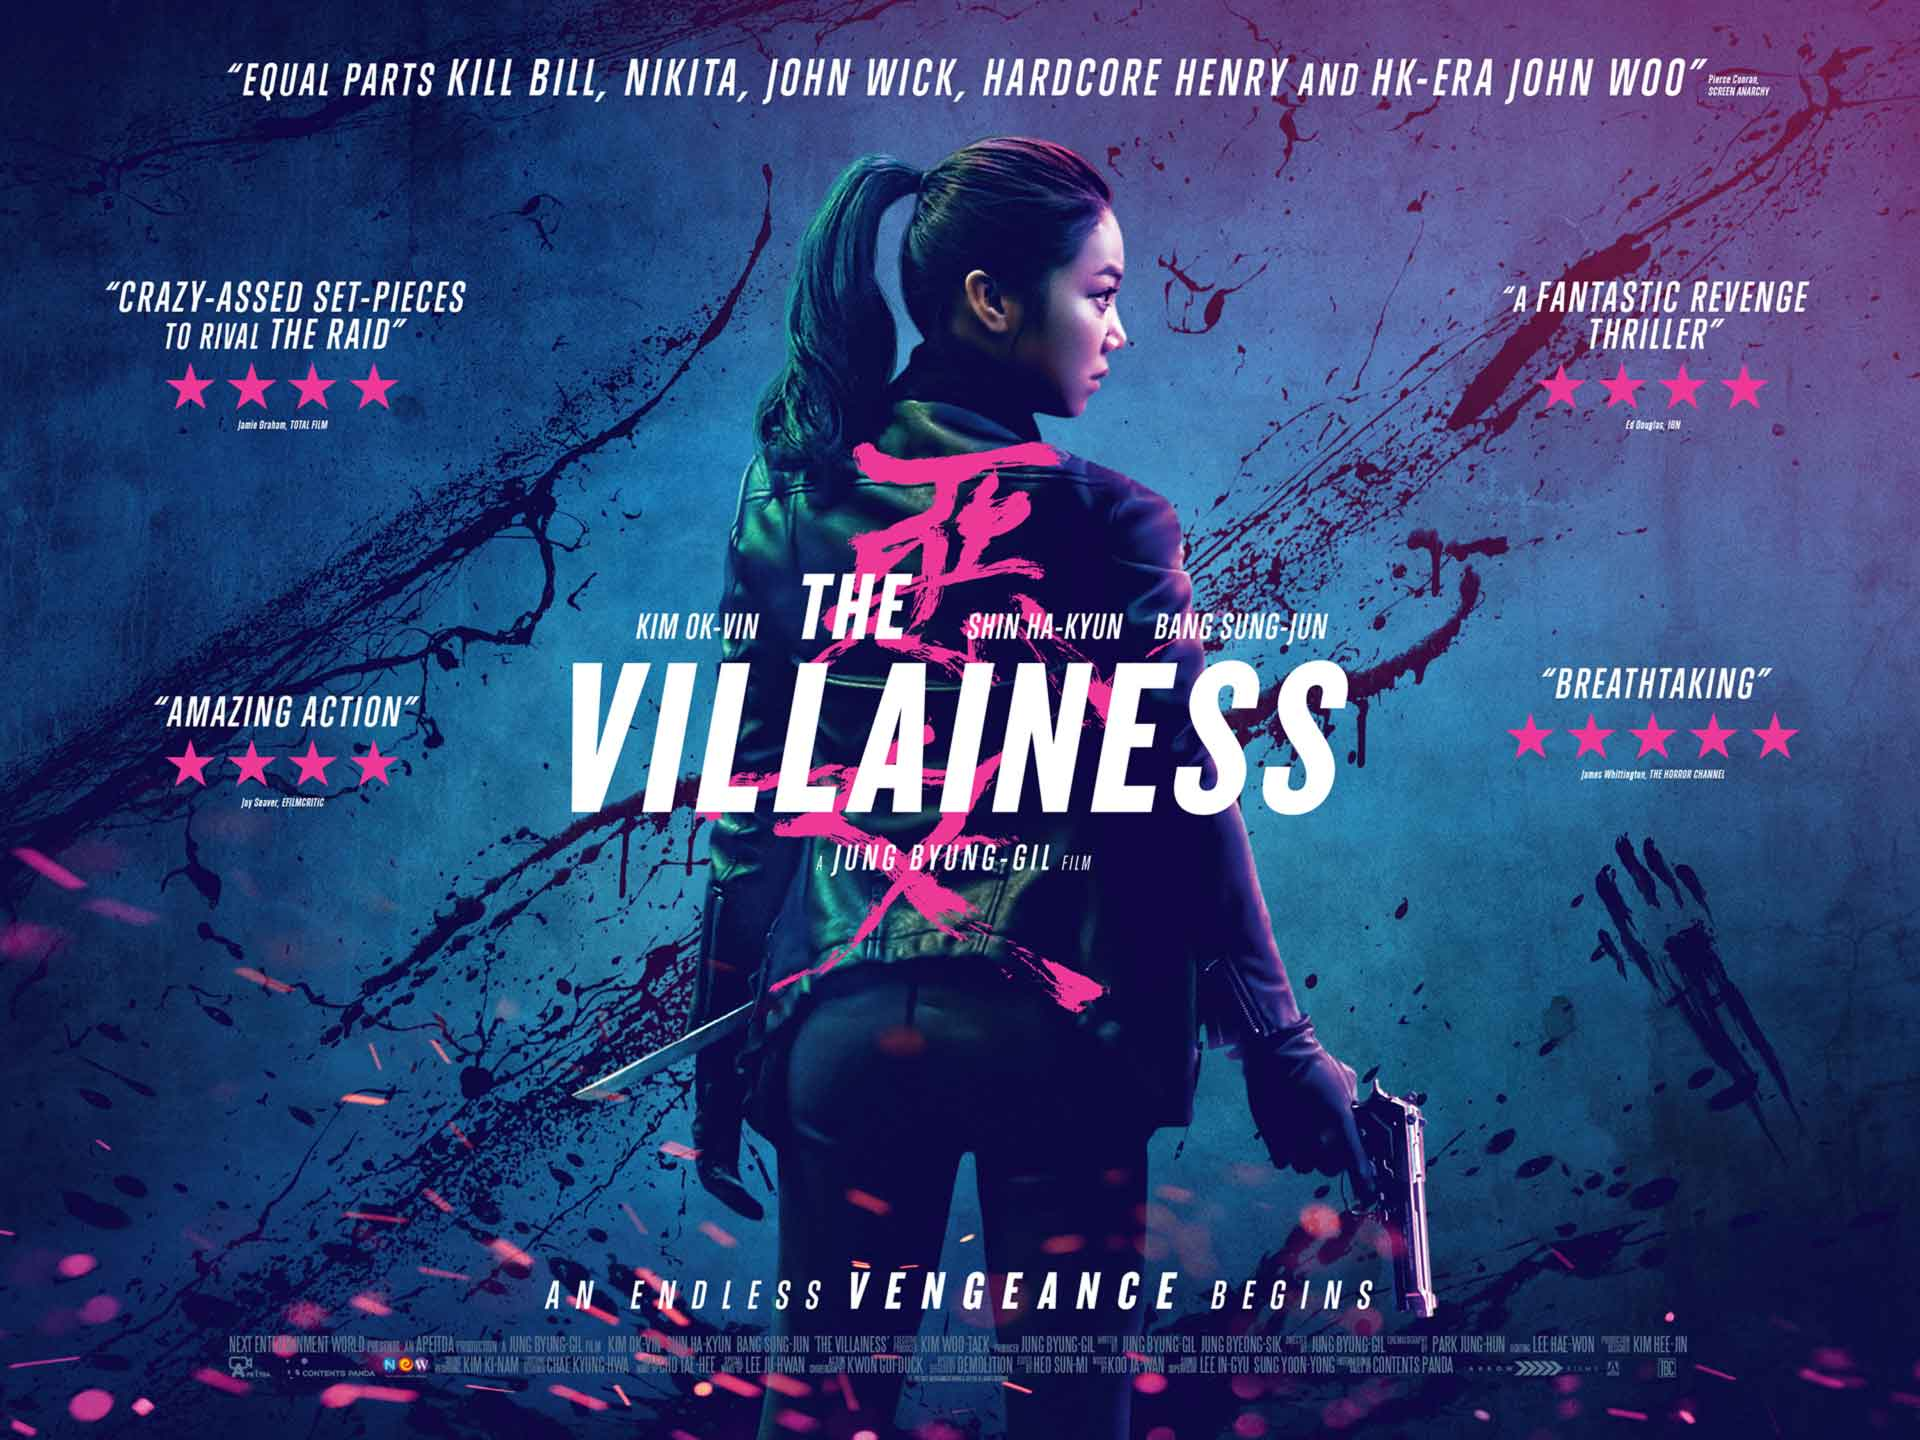 The Villainess UK Trailer - OC Movie Reviews - Movie Reviews, Movie News, Documentary Reviews, Short Films, Short Film Reviews, Trailers, Movie Trailers, Interviews, film reviews, film news, hollywood, indie films, documentaries